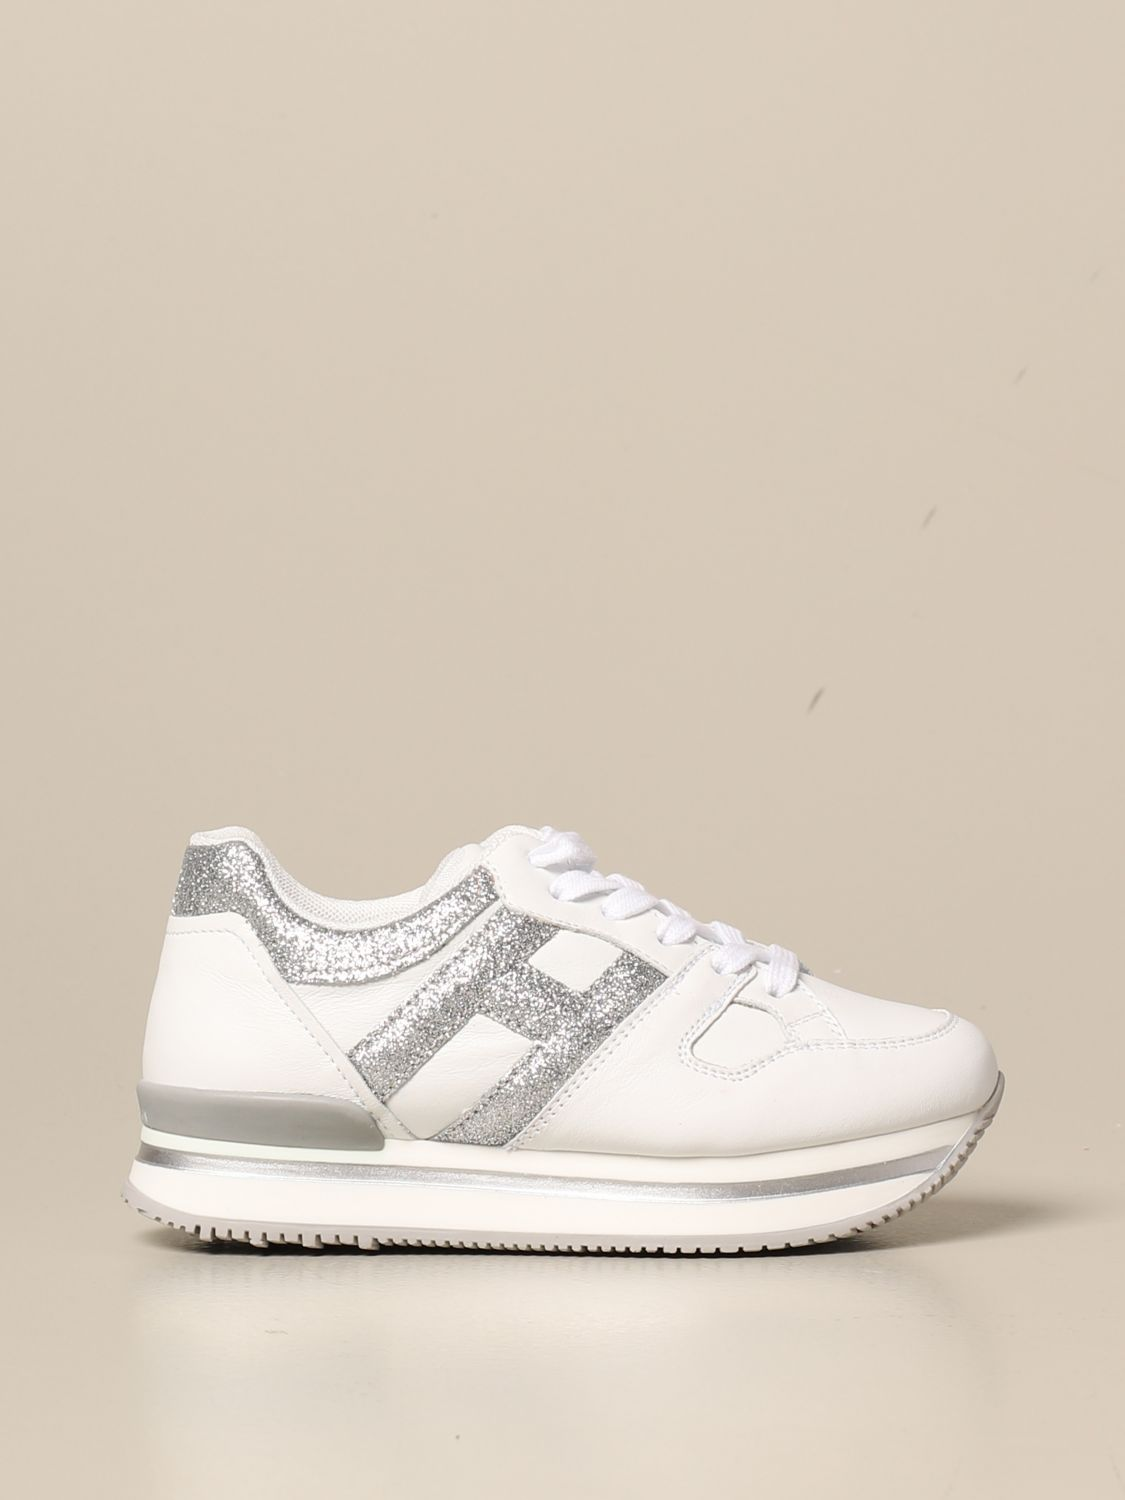 H222 Hogan sneakers in leather and glitter